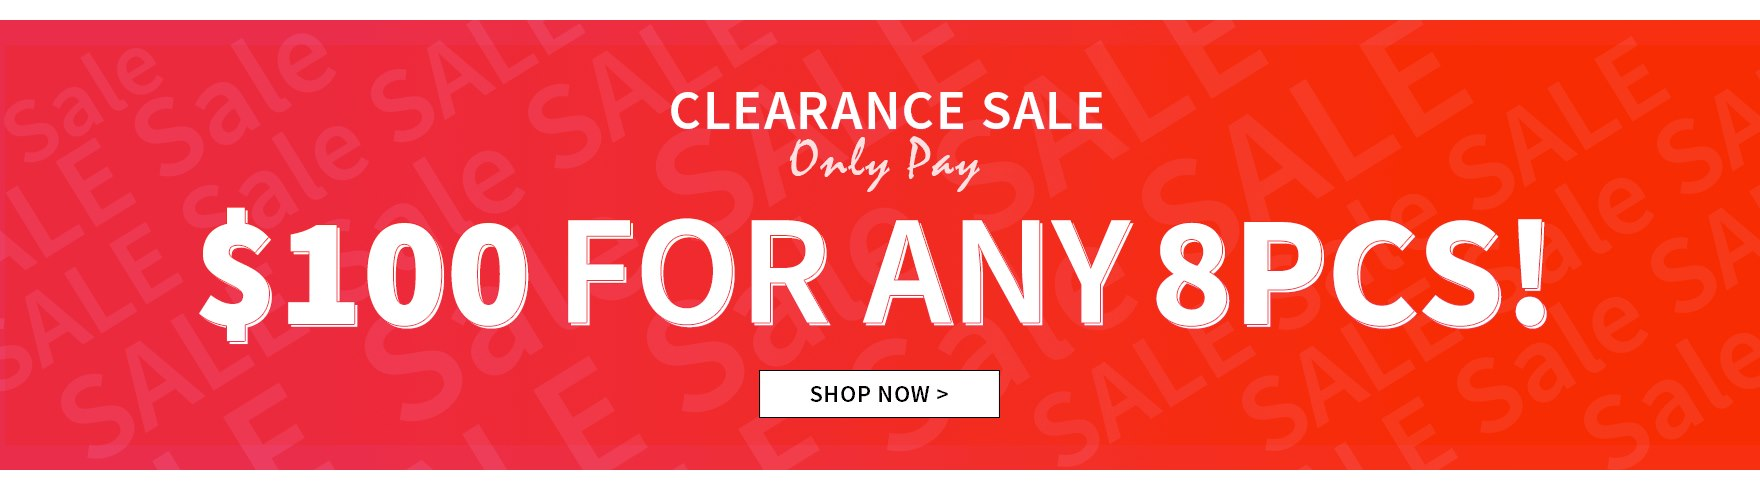 Black Friday Warm Up: 10% Off WOMEN'S & MEN'S & ACCESSORIES Over $99